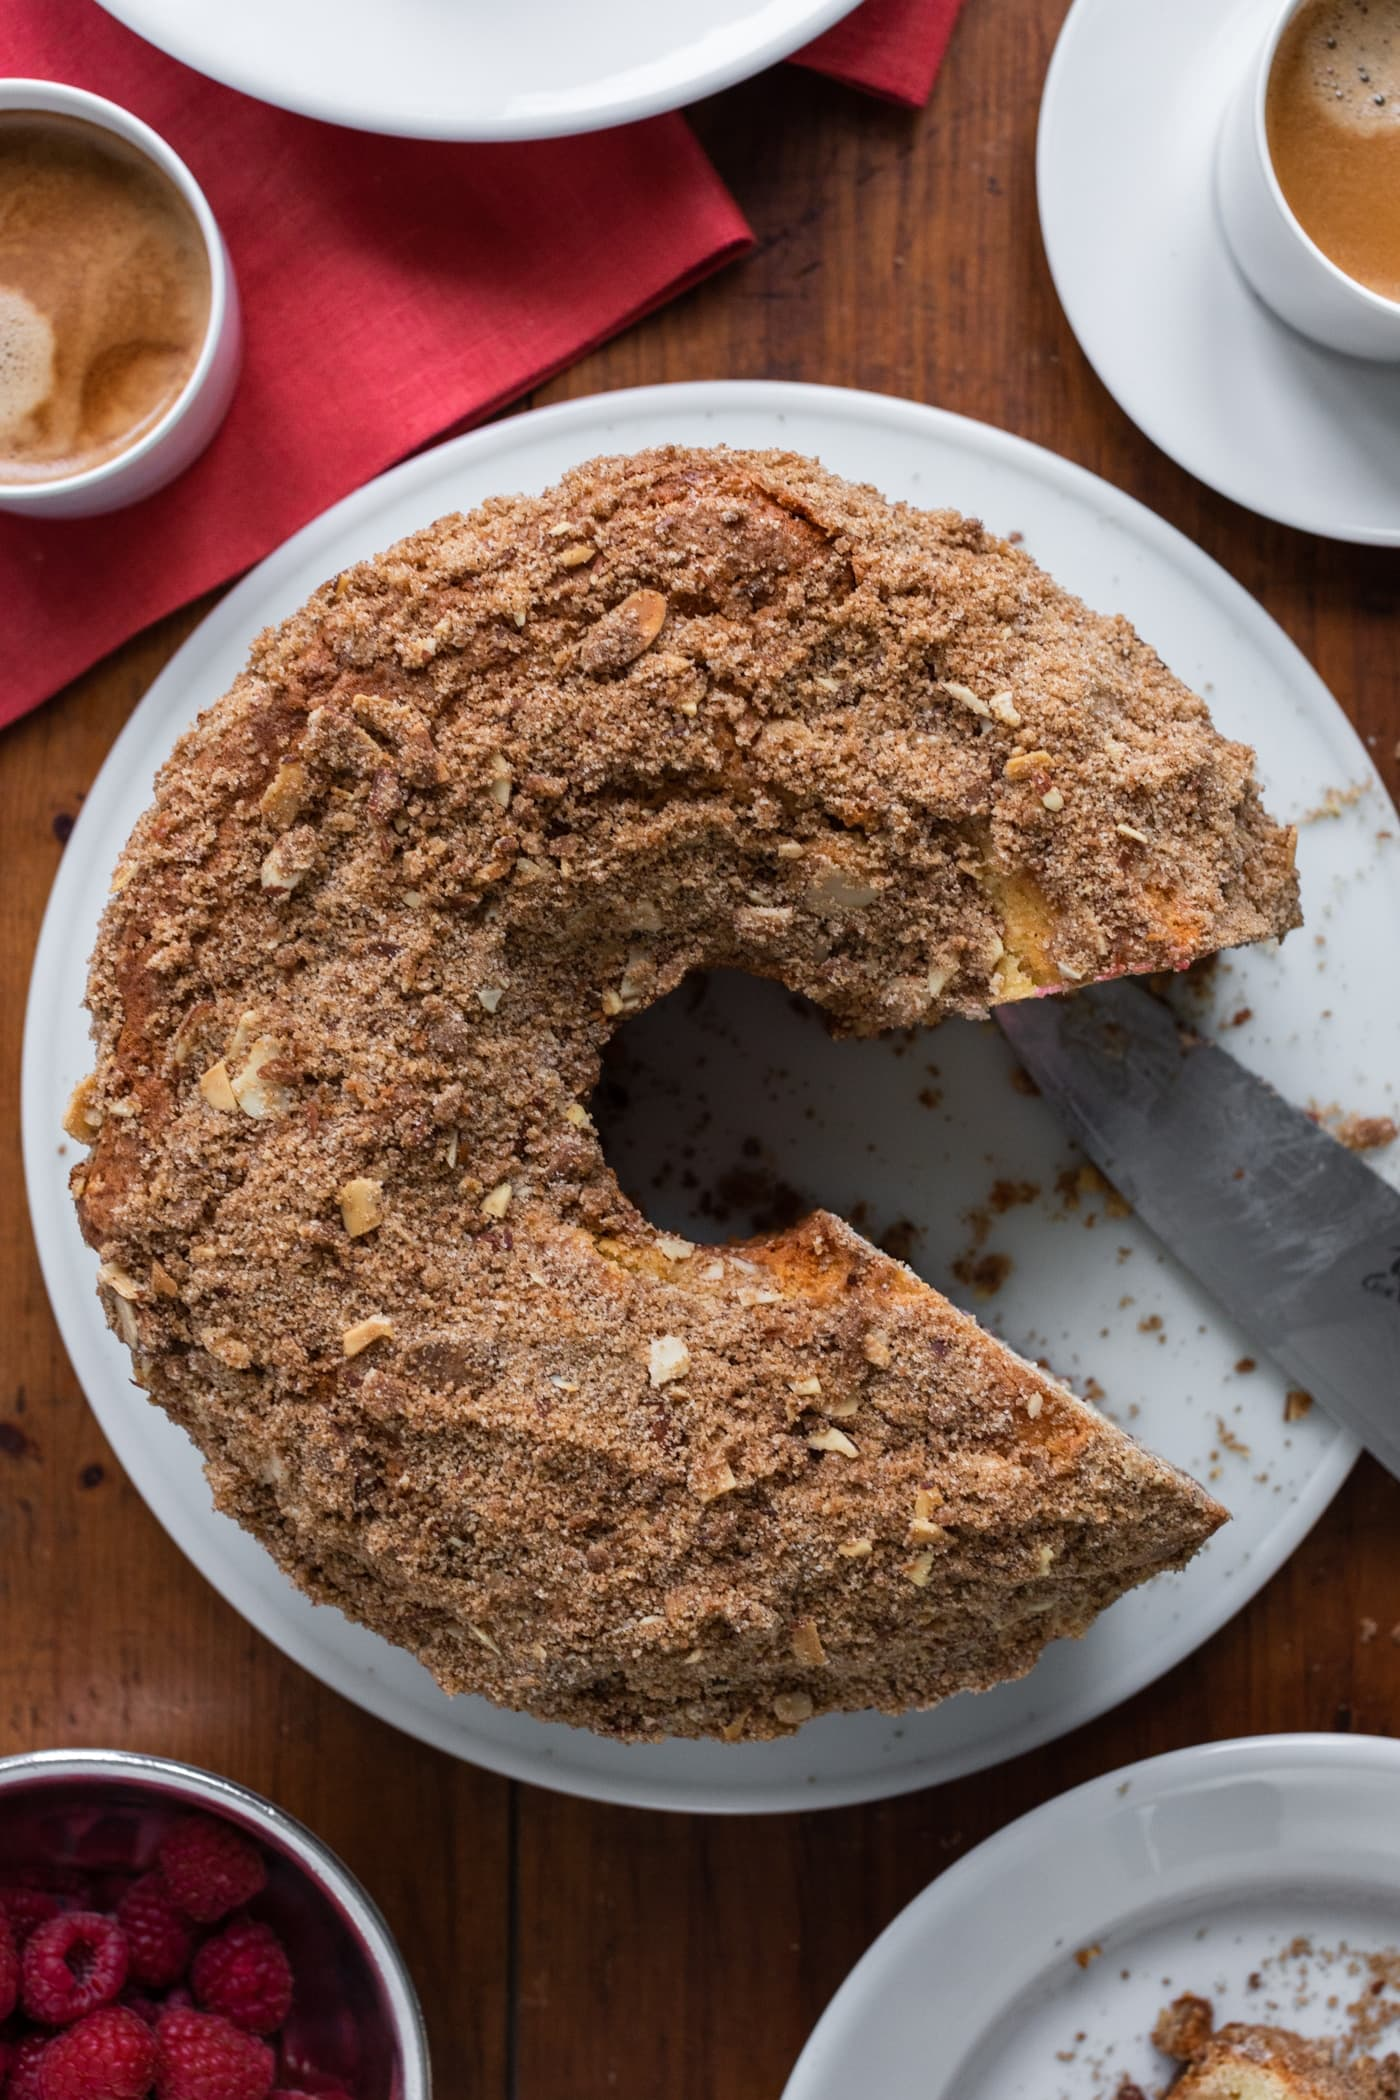 Top down view of coffee cake sitting on red clothes with knife sitting on plate after cutting slices